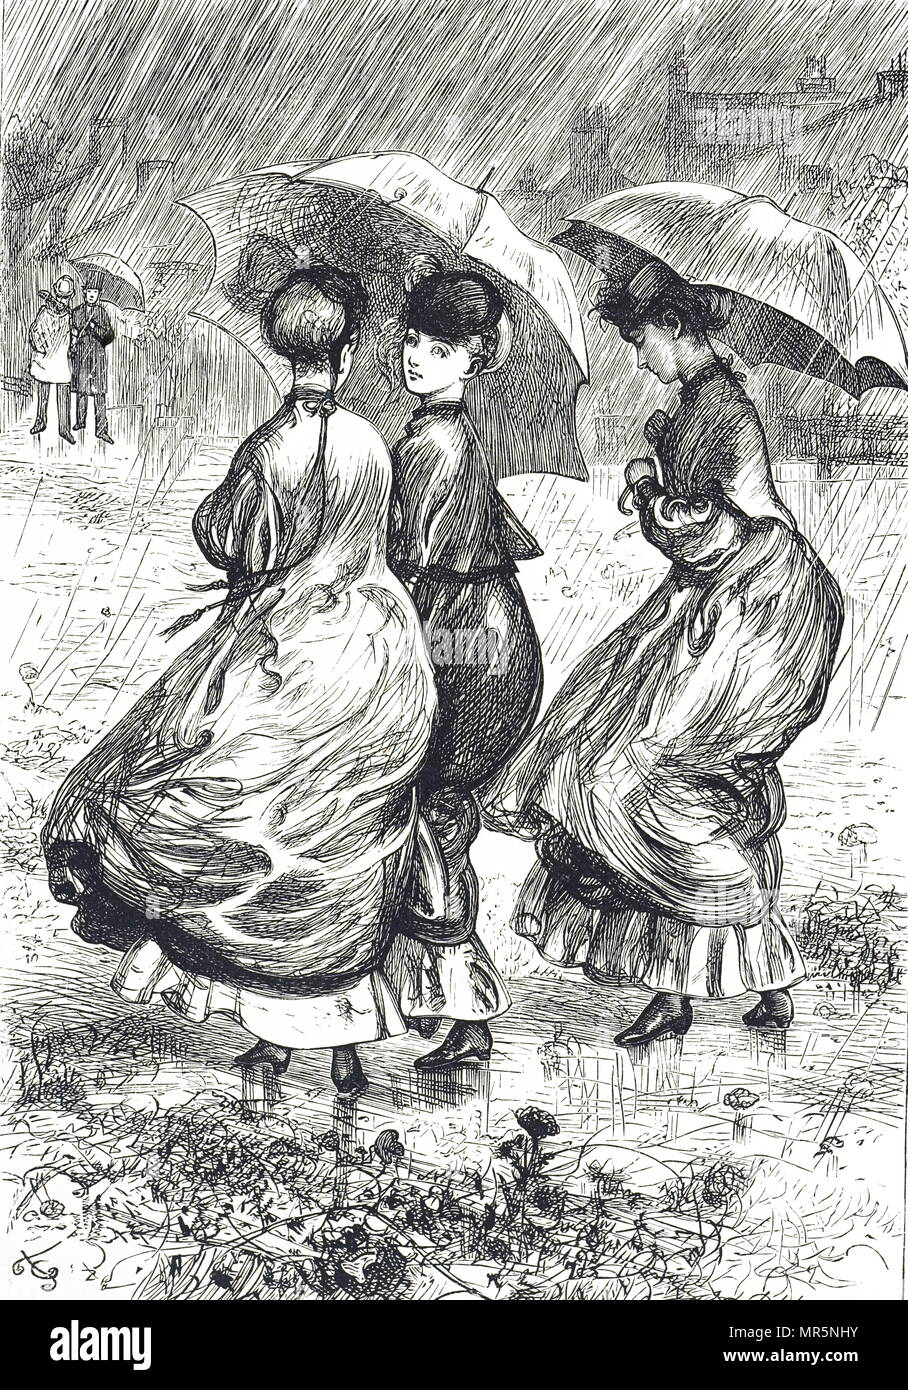 Engraving Depicting Young Women Huddling Under Umbrellas During A Rain Storm Illustrated By Gordon Thomson A British Illustrator And Artist Dated 19th Century Stock Photo Alamy